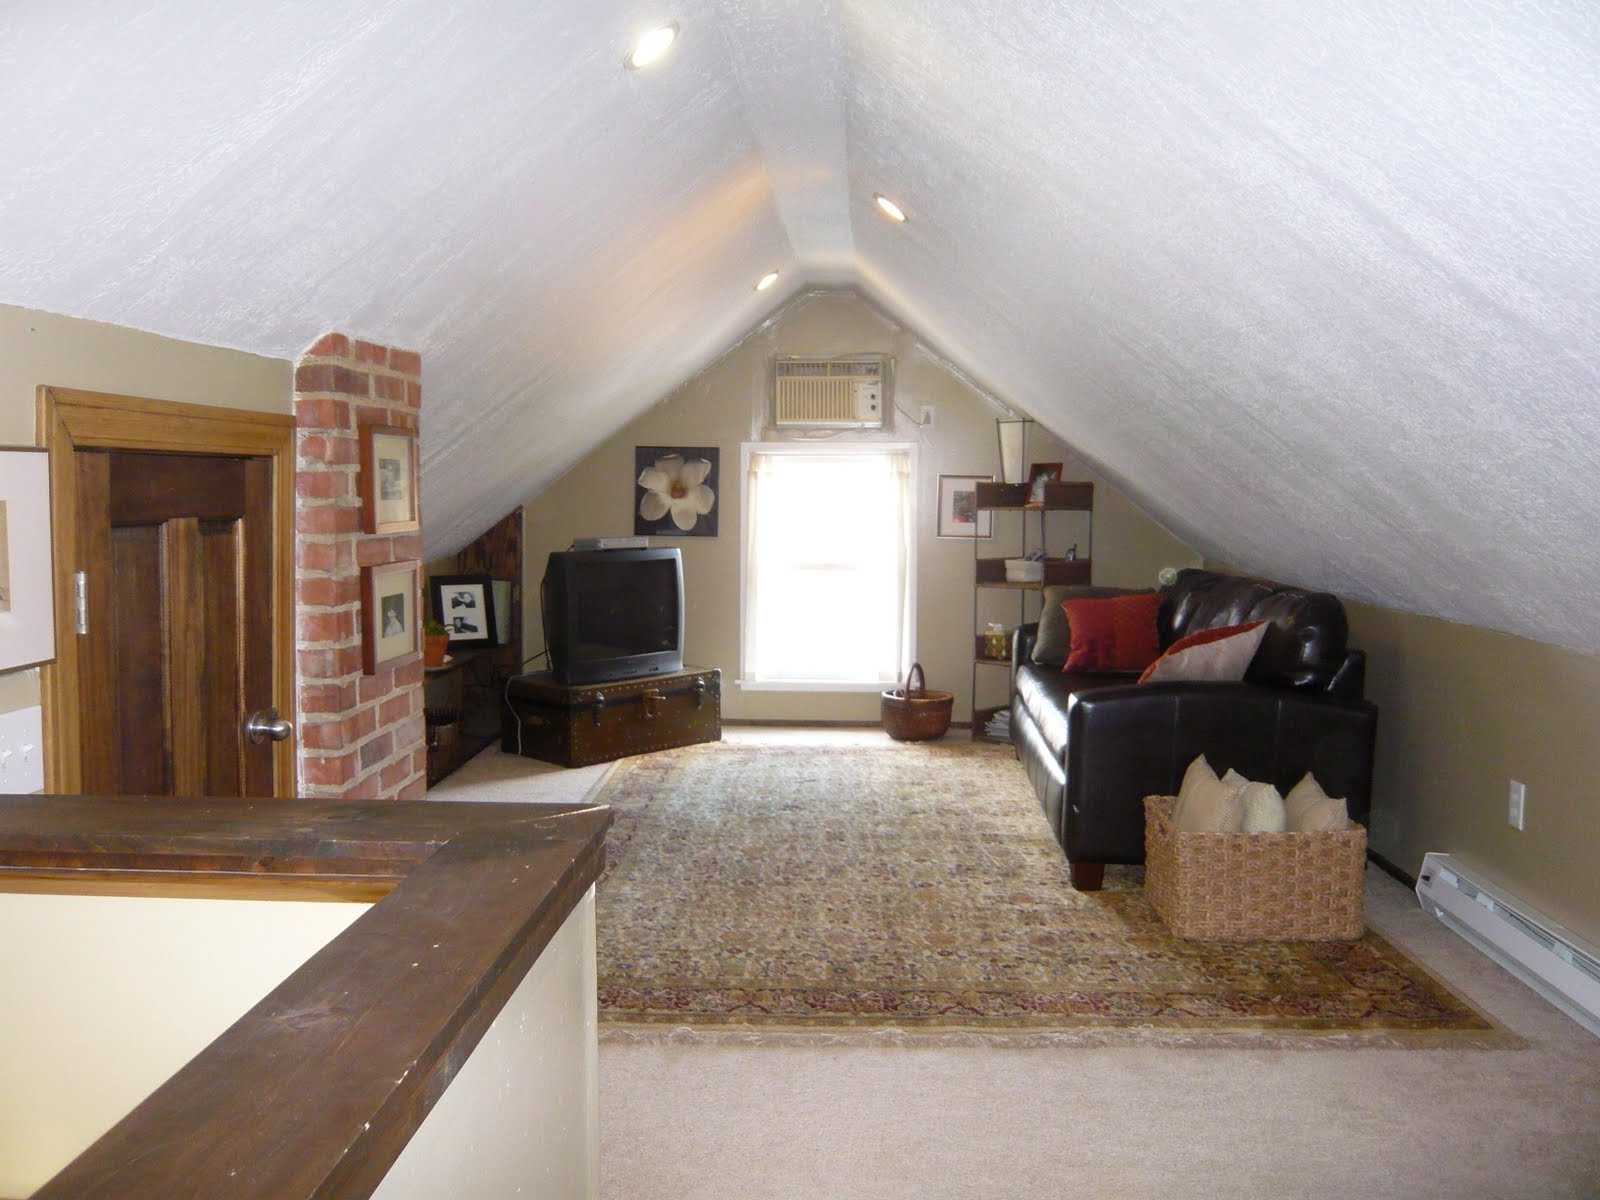 Attic Space Ideas Ideas For Finishing Attic Space Attic Ideas